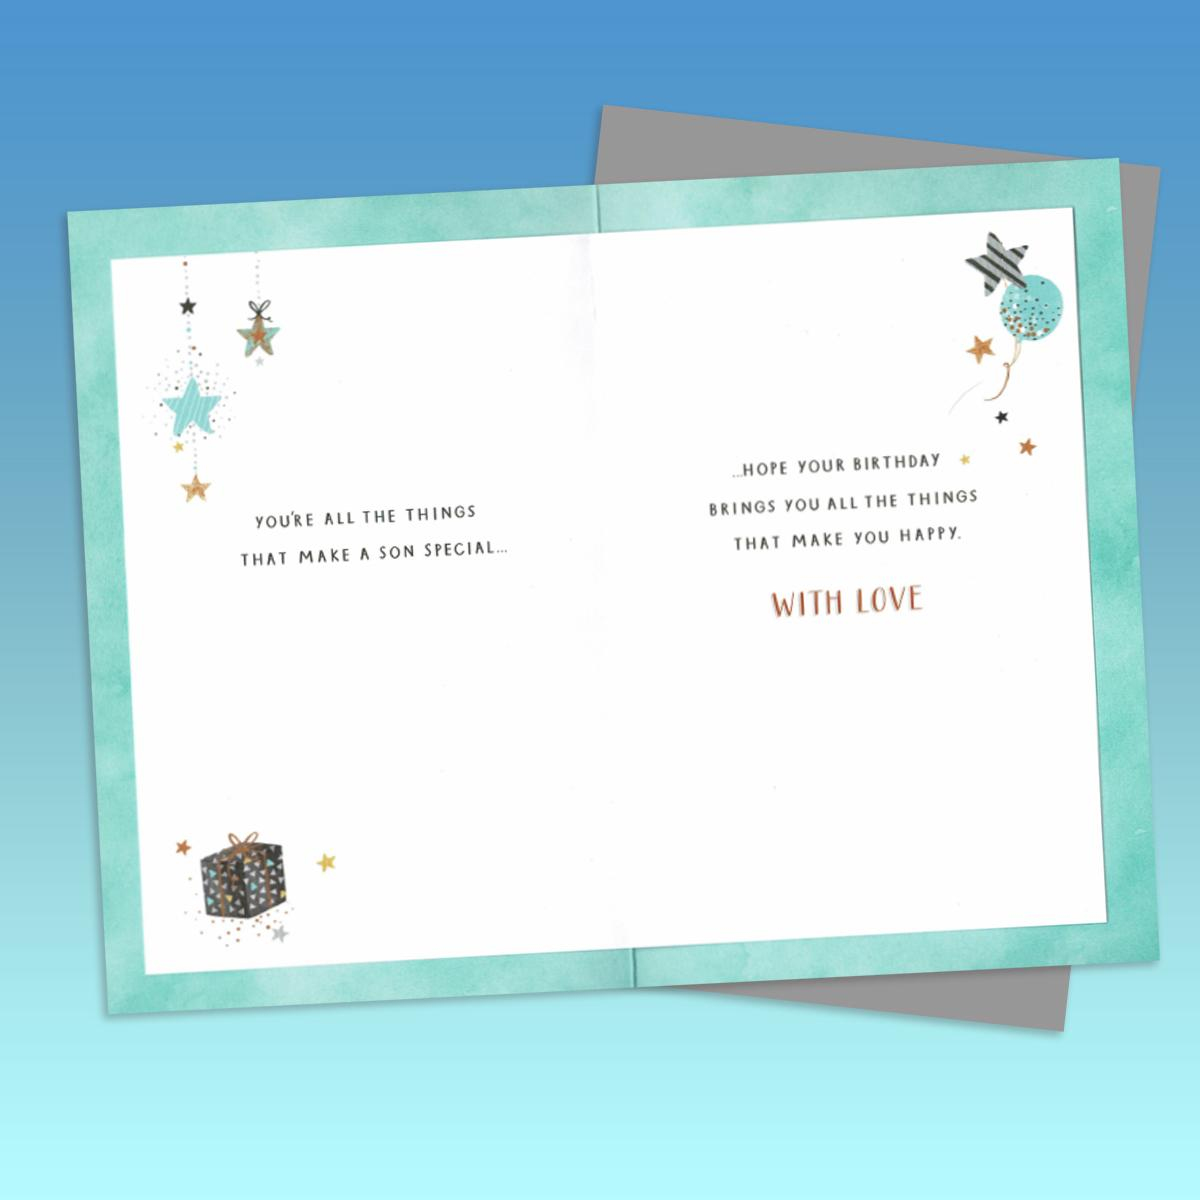 Inside Image Of Son Birthday Card Showing Layout And Printed Text